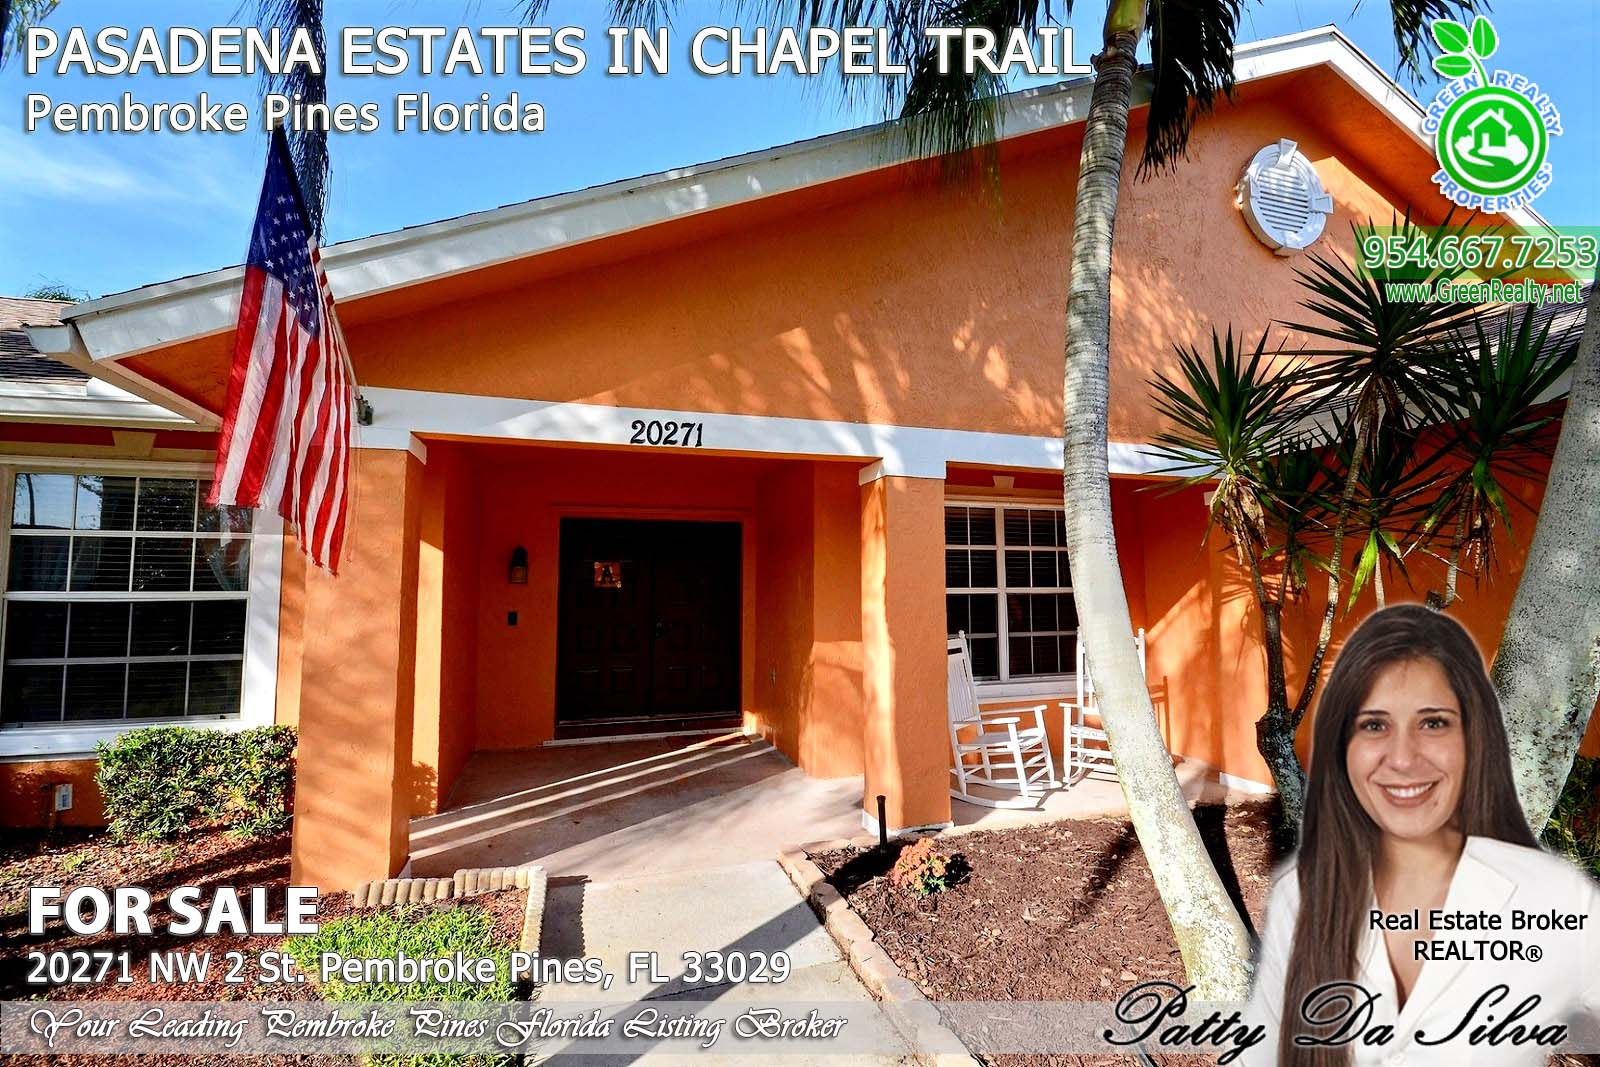 Pasadena Estates of Chapel Trail - Pembroke Pines FL brokerage